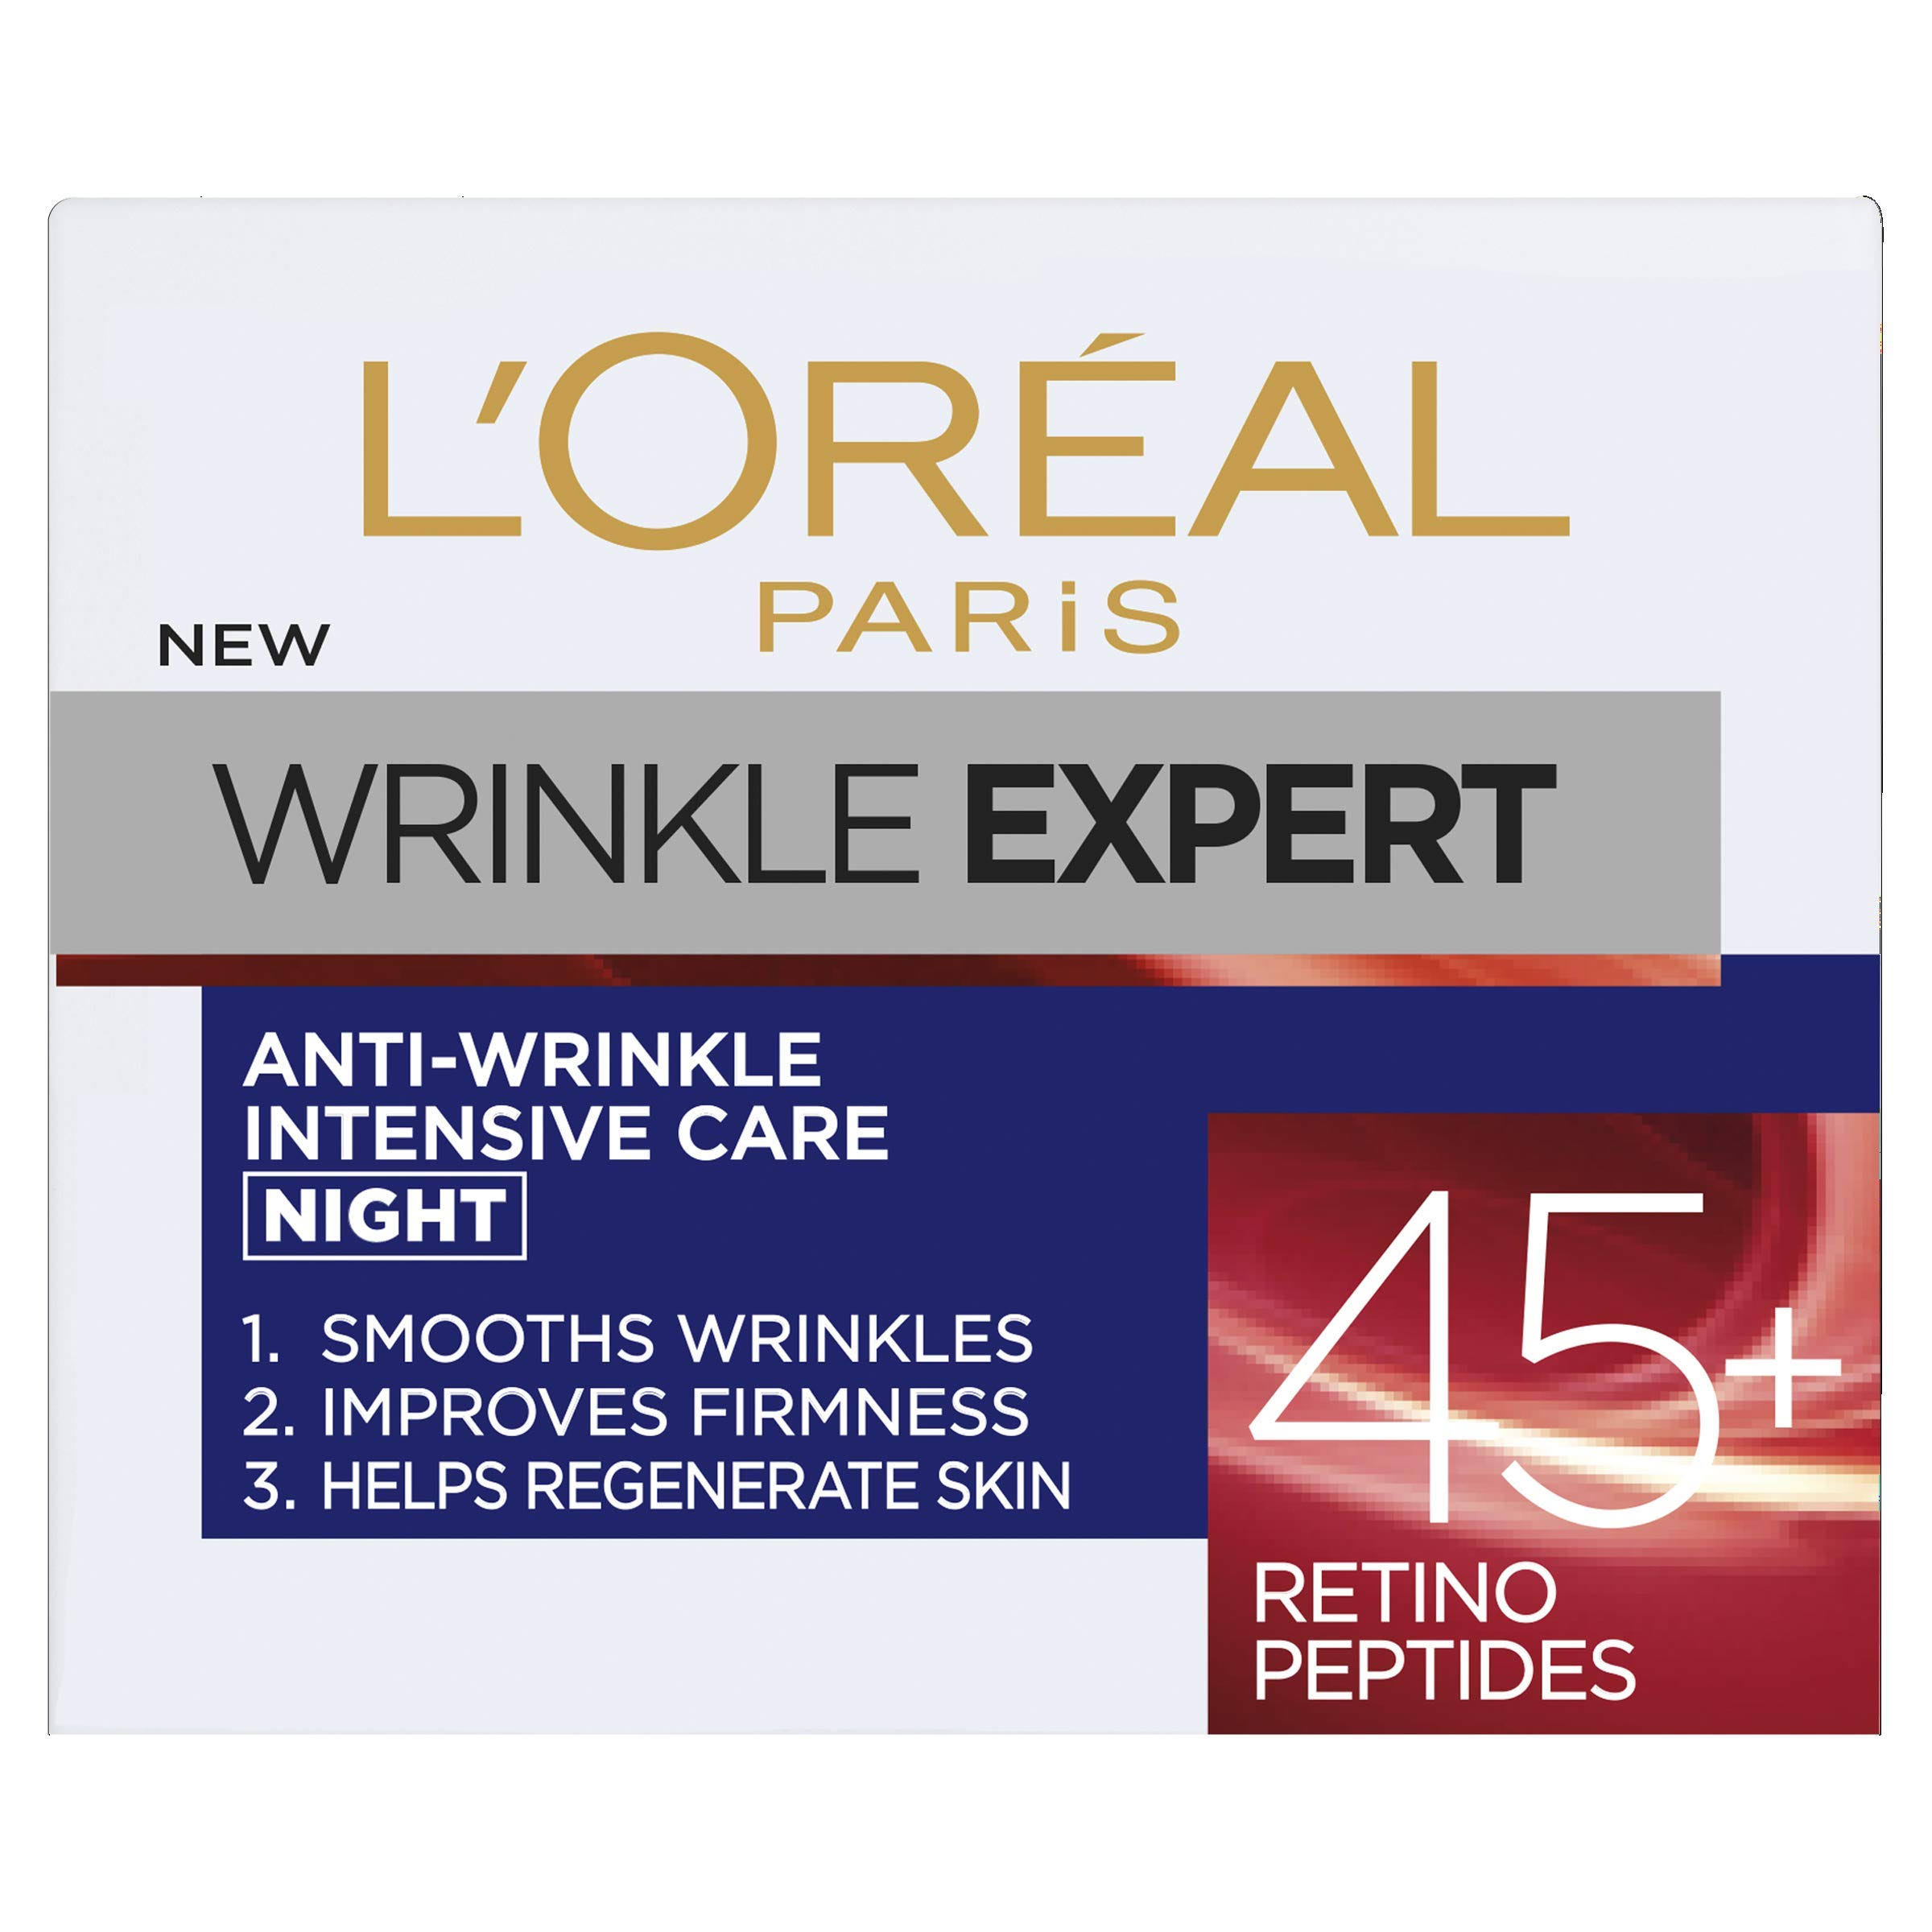 L'Oreal Wrinkle Expert 45+ Retino Peptides Night Cream, 50 ml